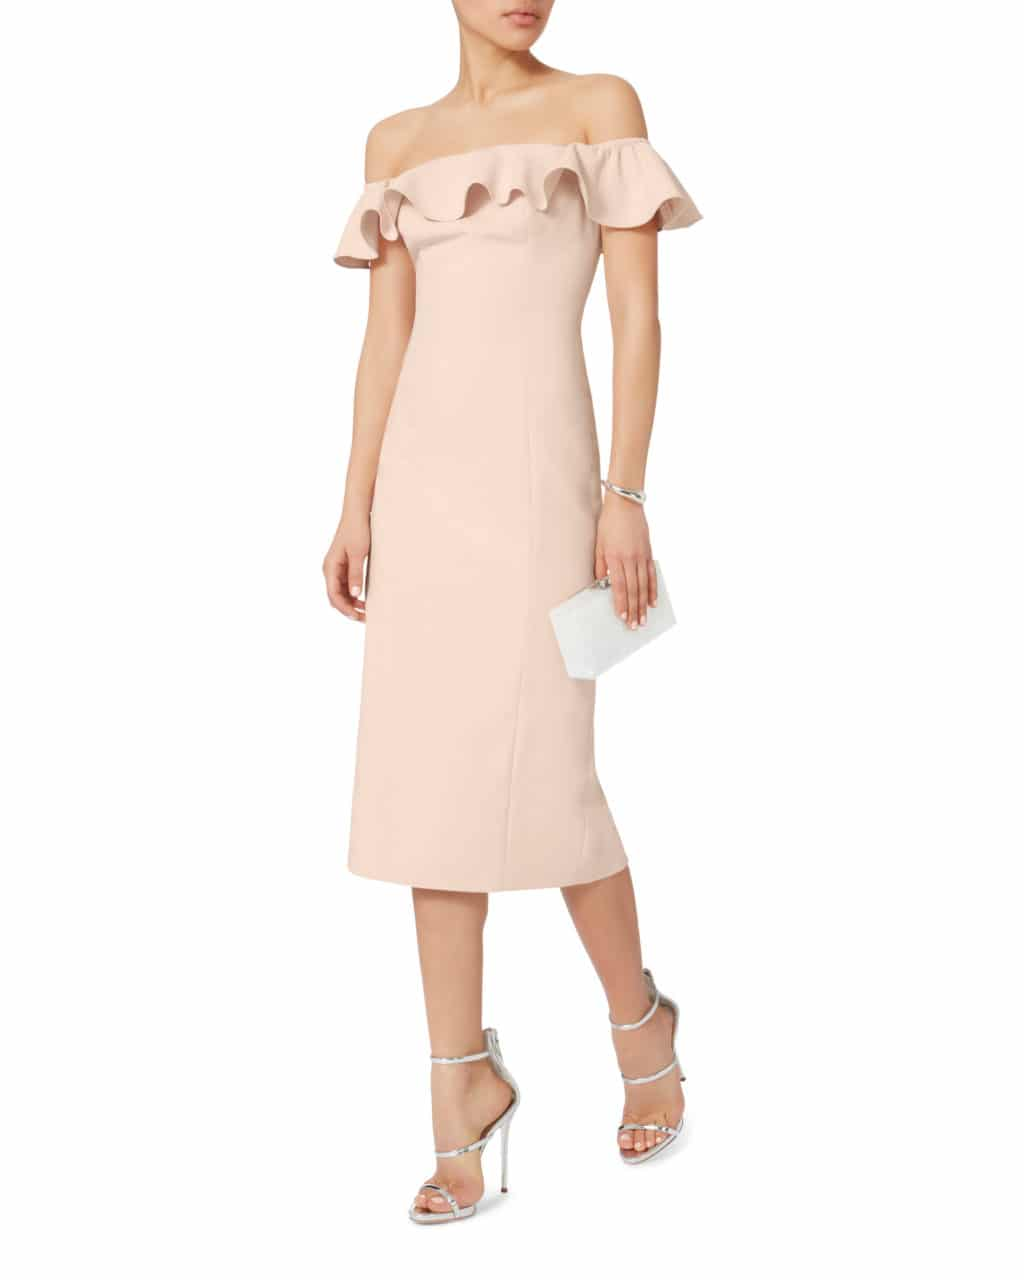 3254b3c013c2 JAY GODFREY Rollins Off Shoulder Midi Blush   Nude Dress - We Select ...